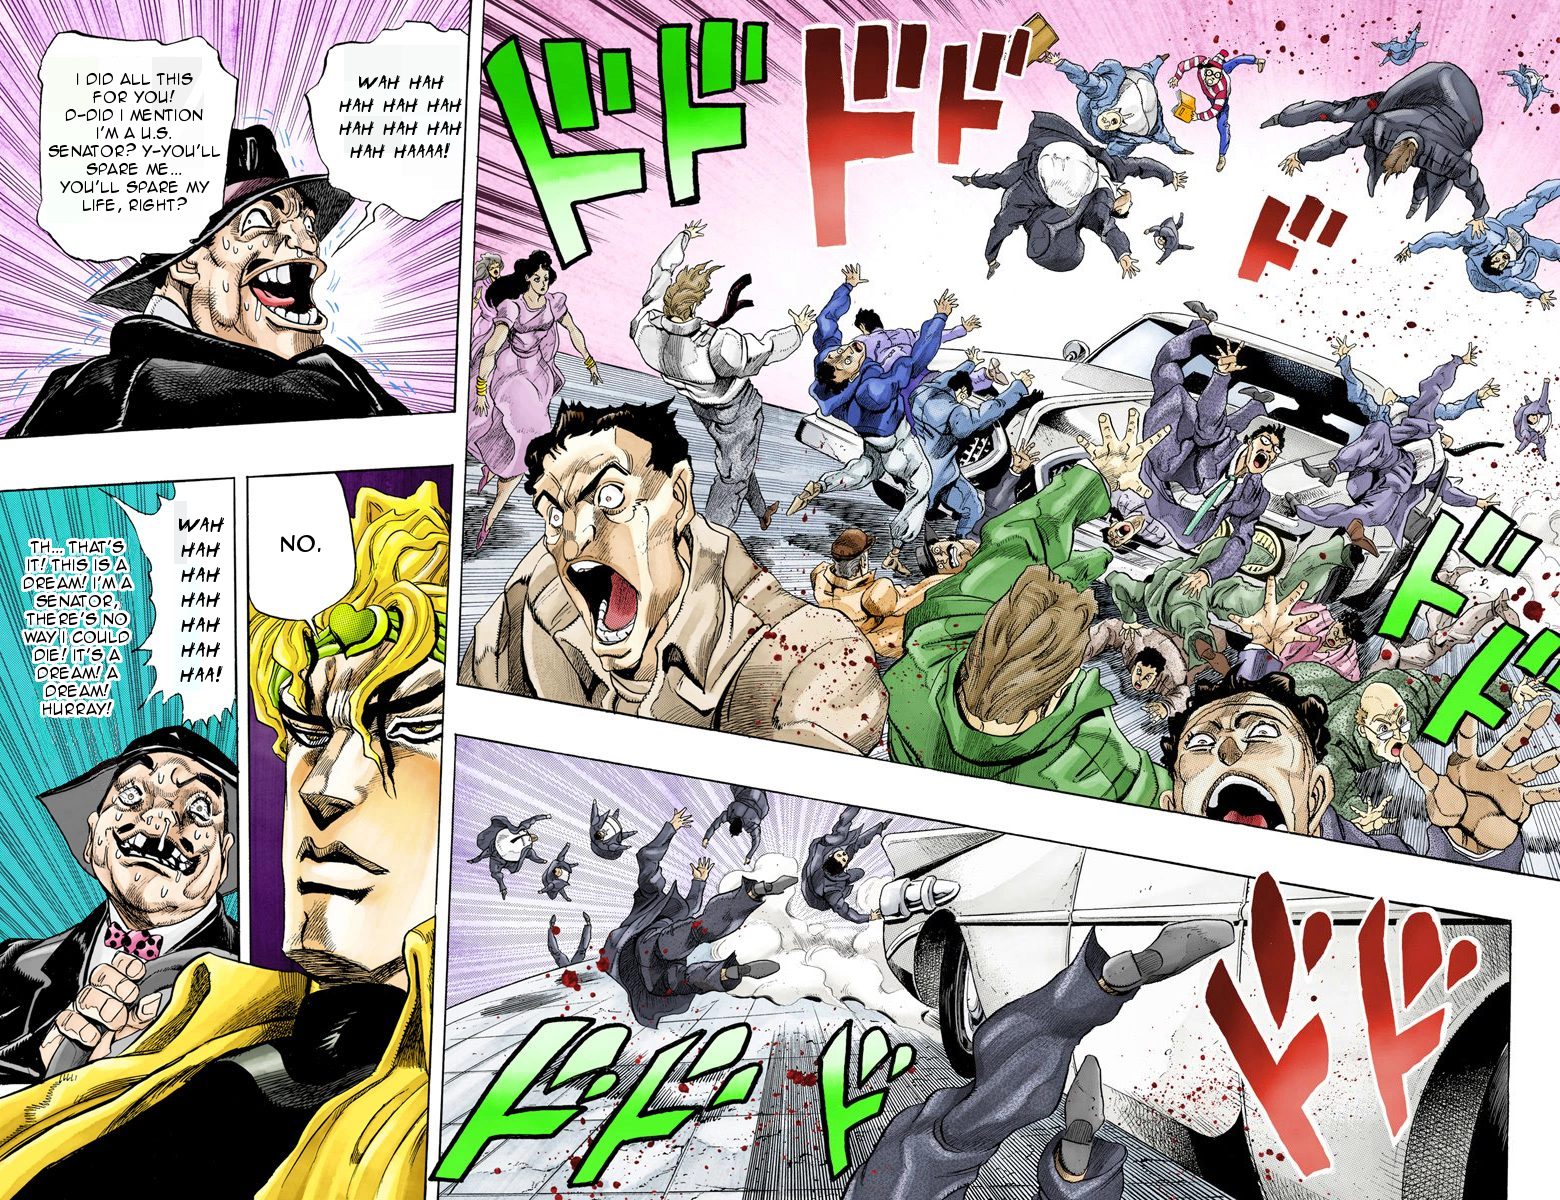 What Moment In Jojo Made You Laugh Unexpectedly